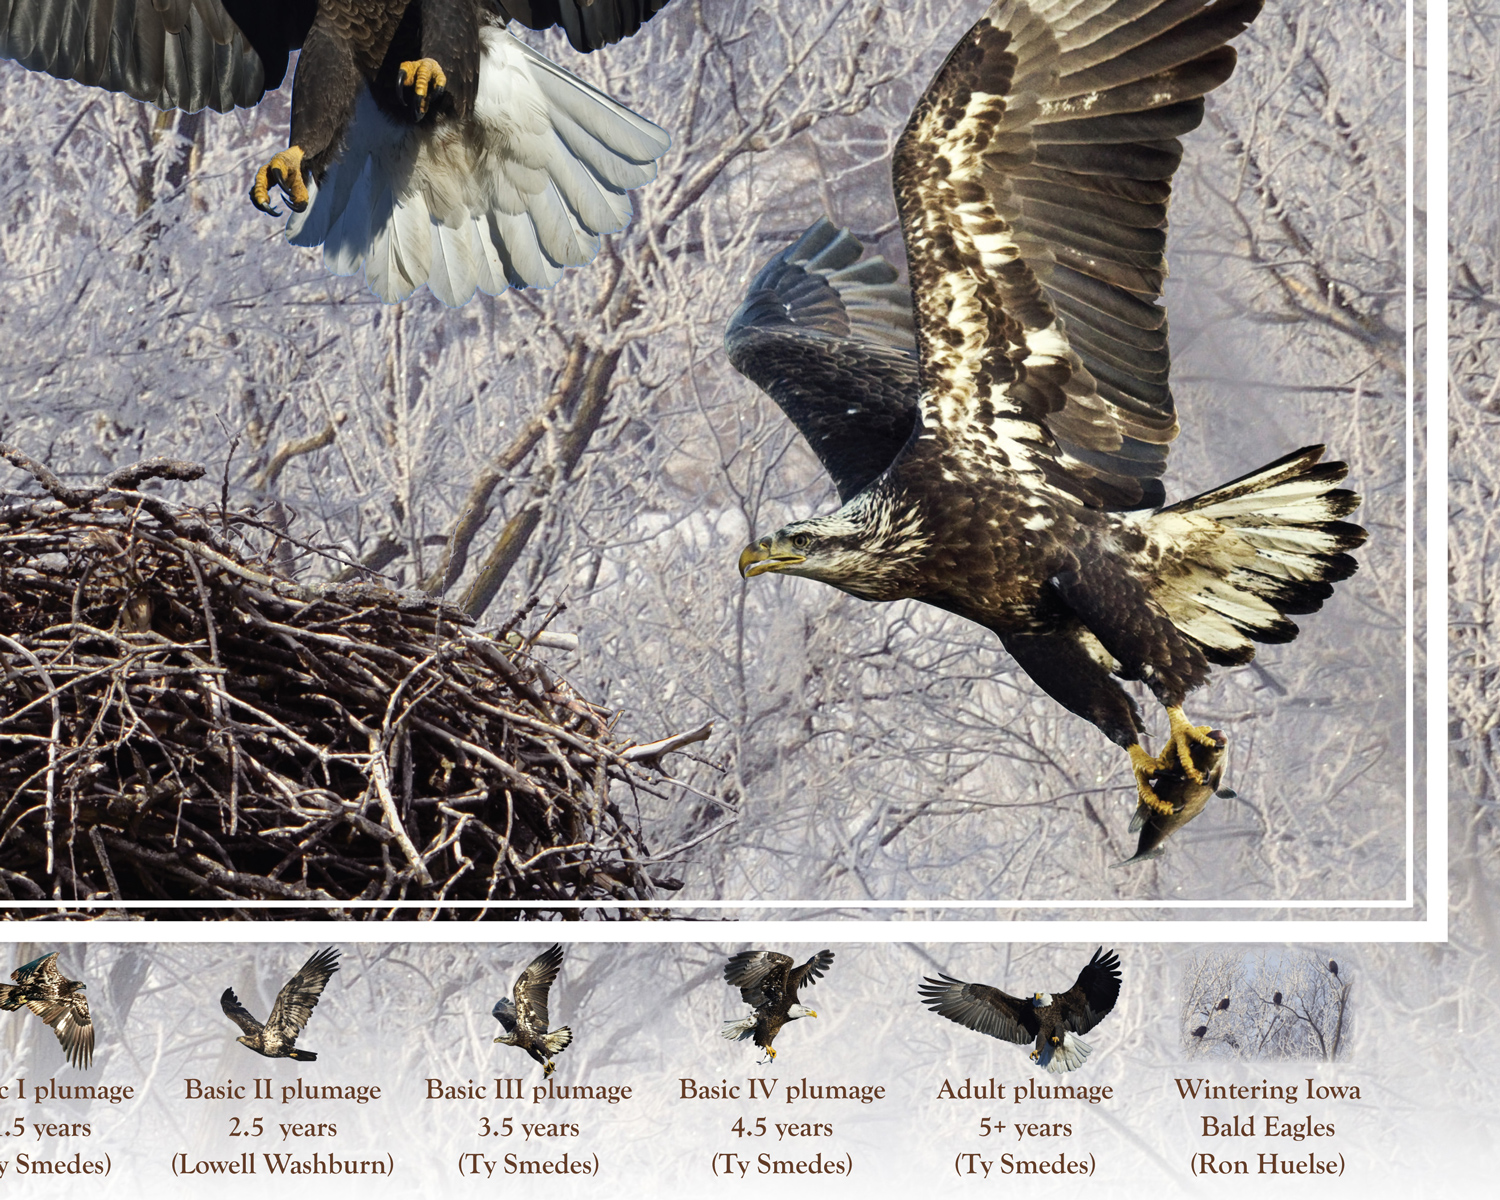 Bald Eagles of Iowa poster, by Billy Reiter